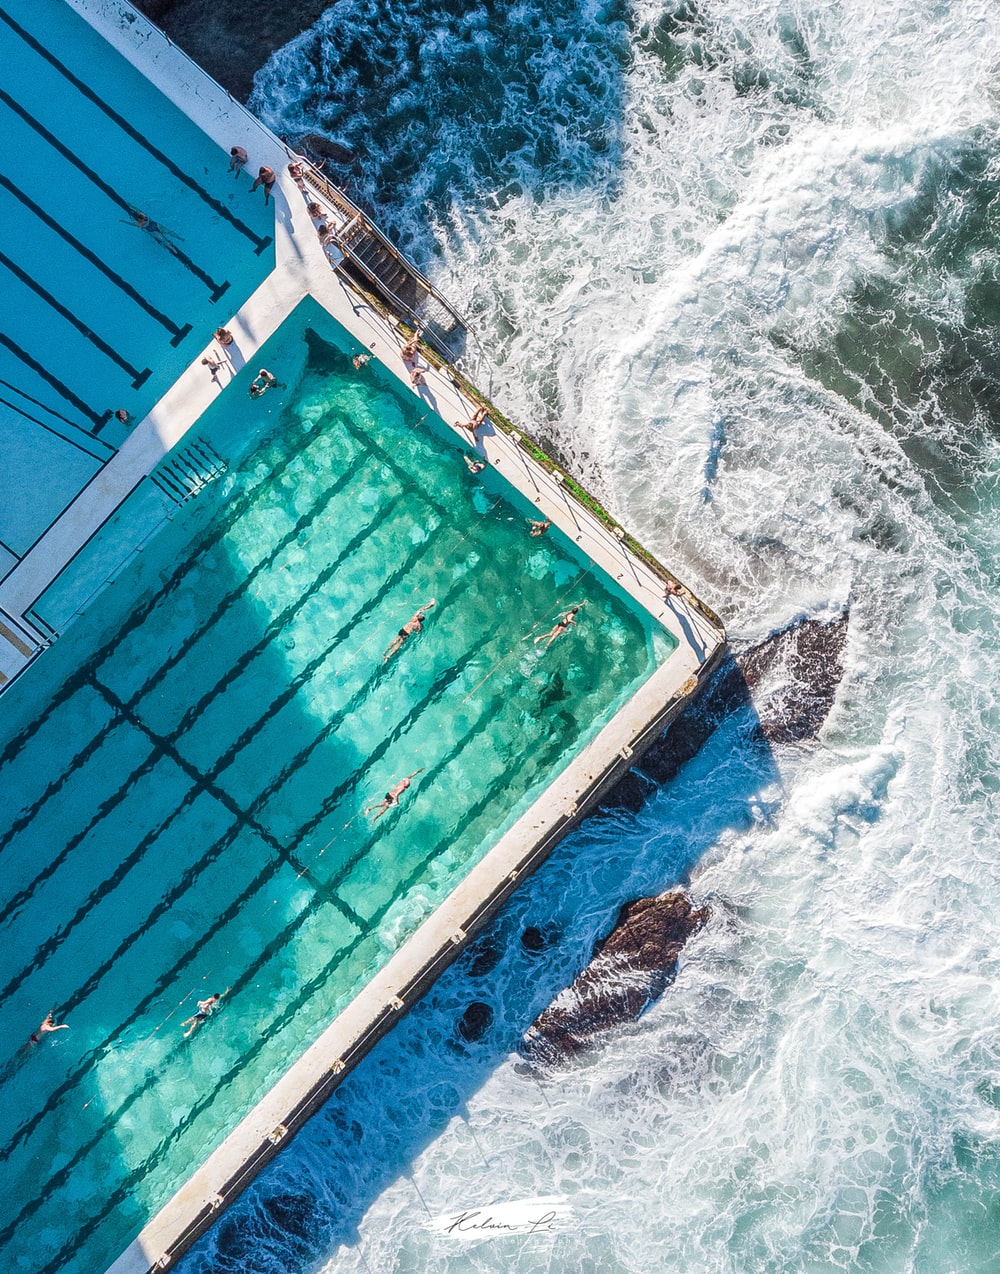 blue and brown swimming pool beside blue and white ocean water during daytime